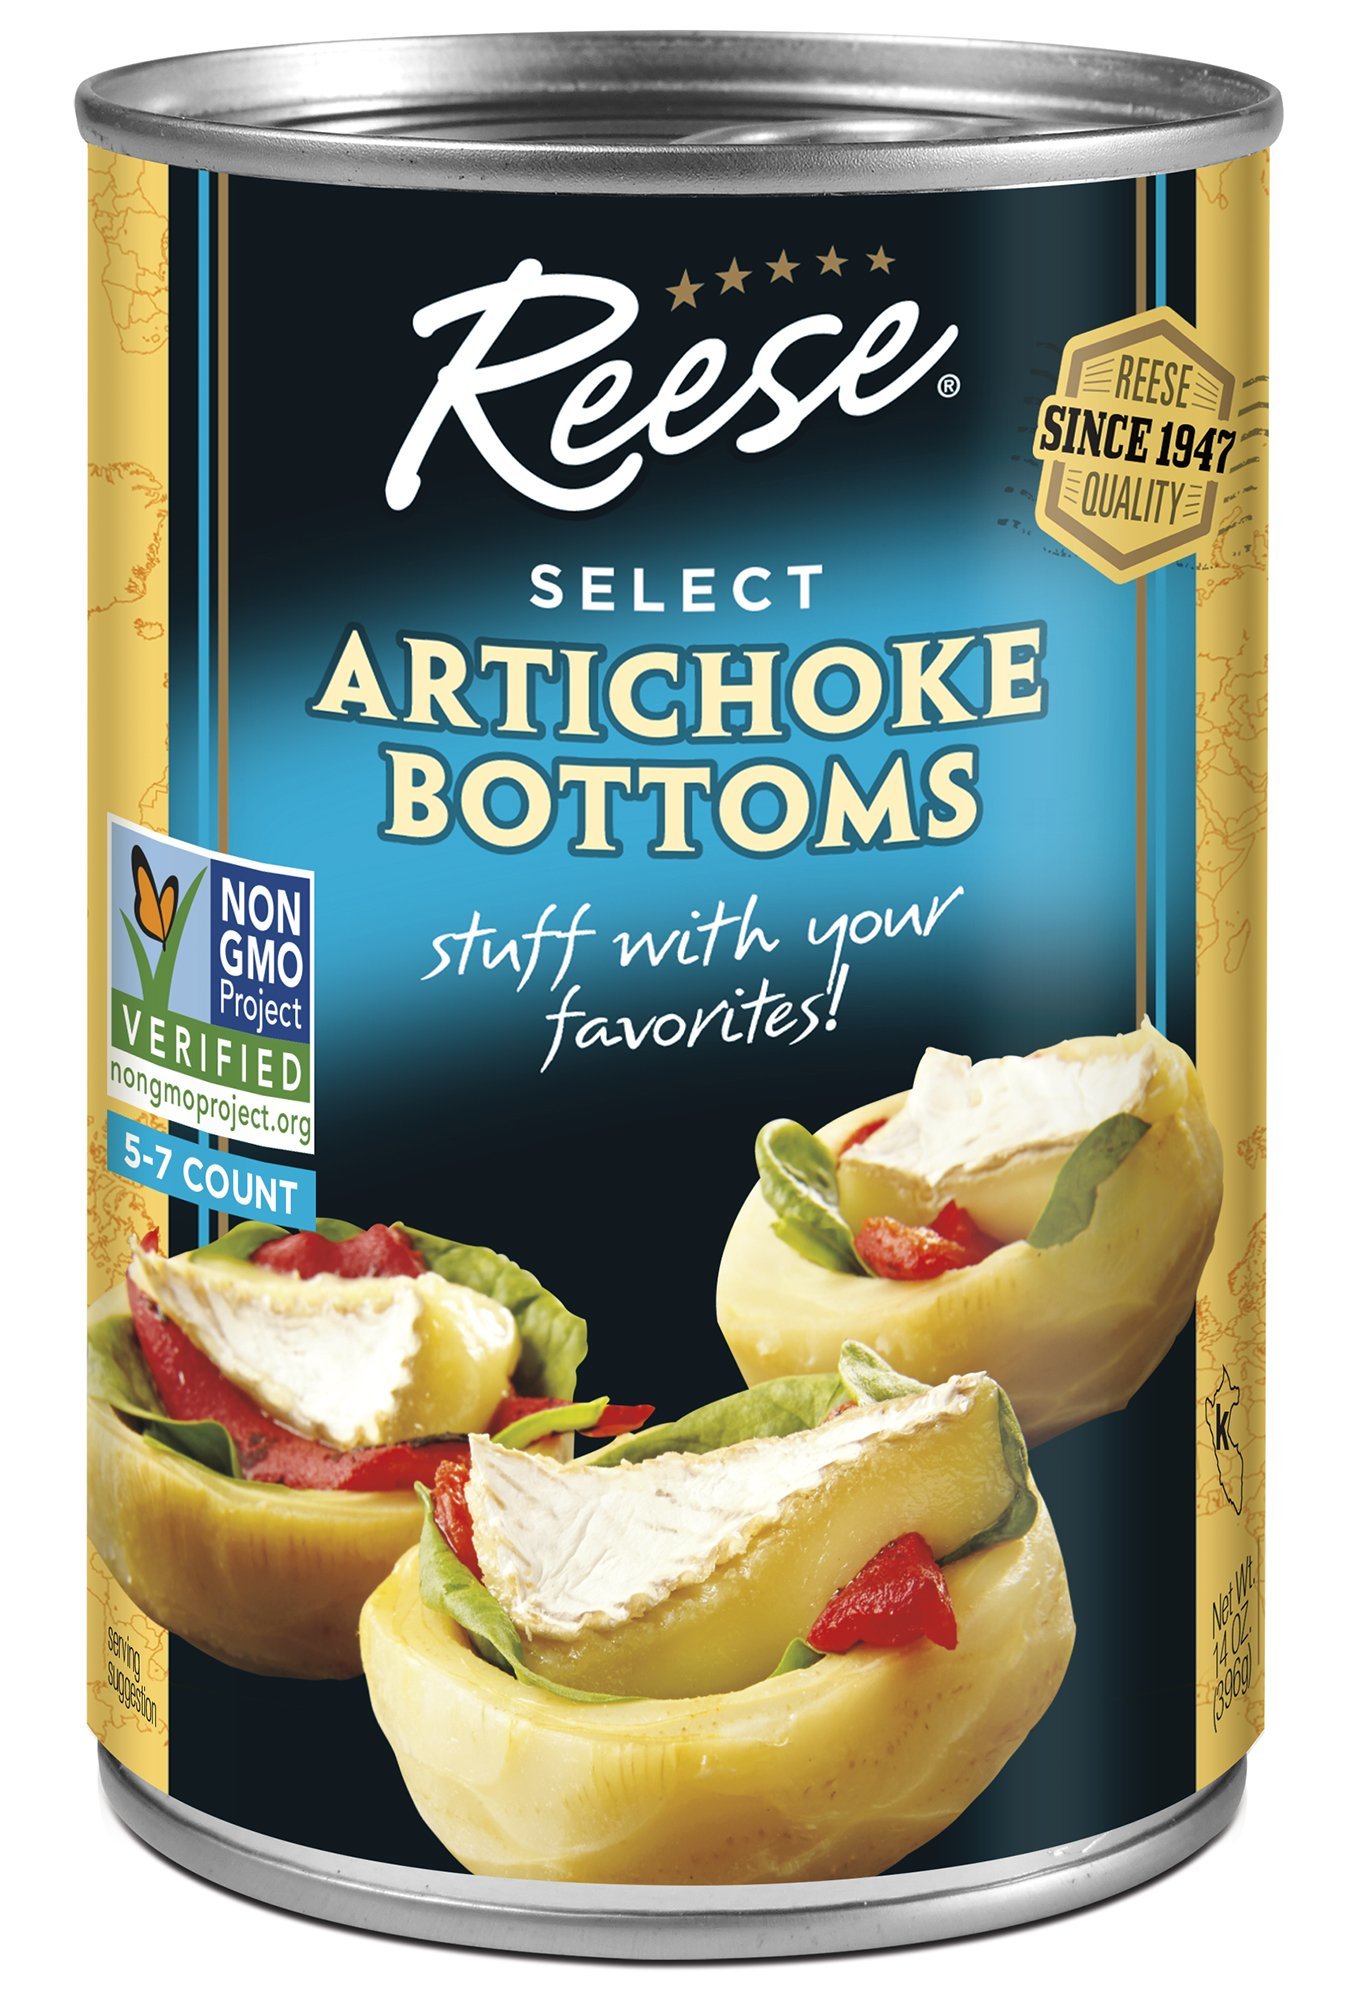 Reese Artichoke Bottoms, 14-Ounce Cans